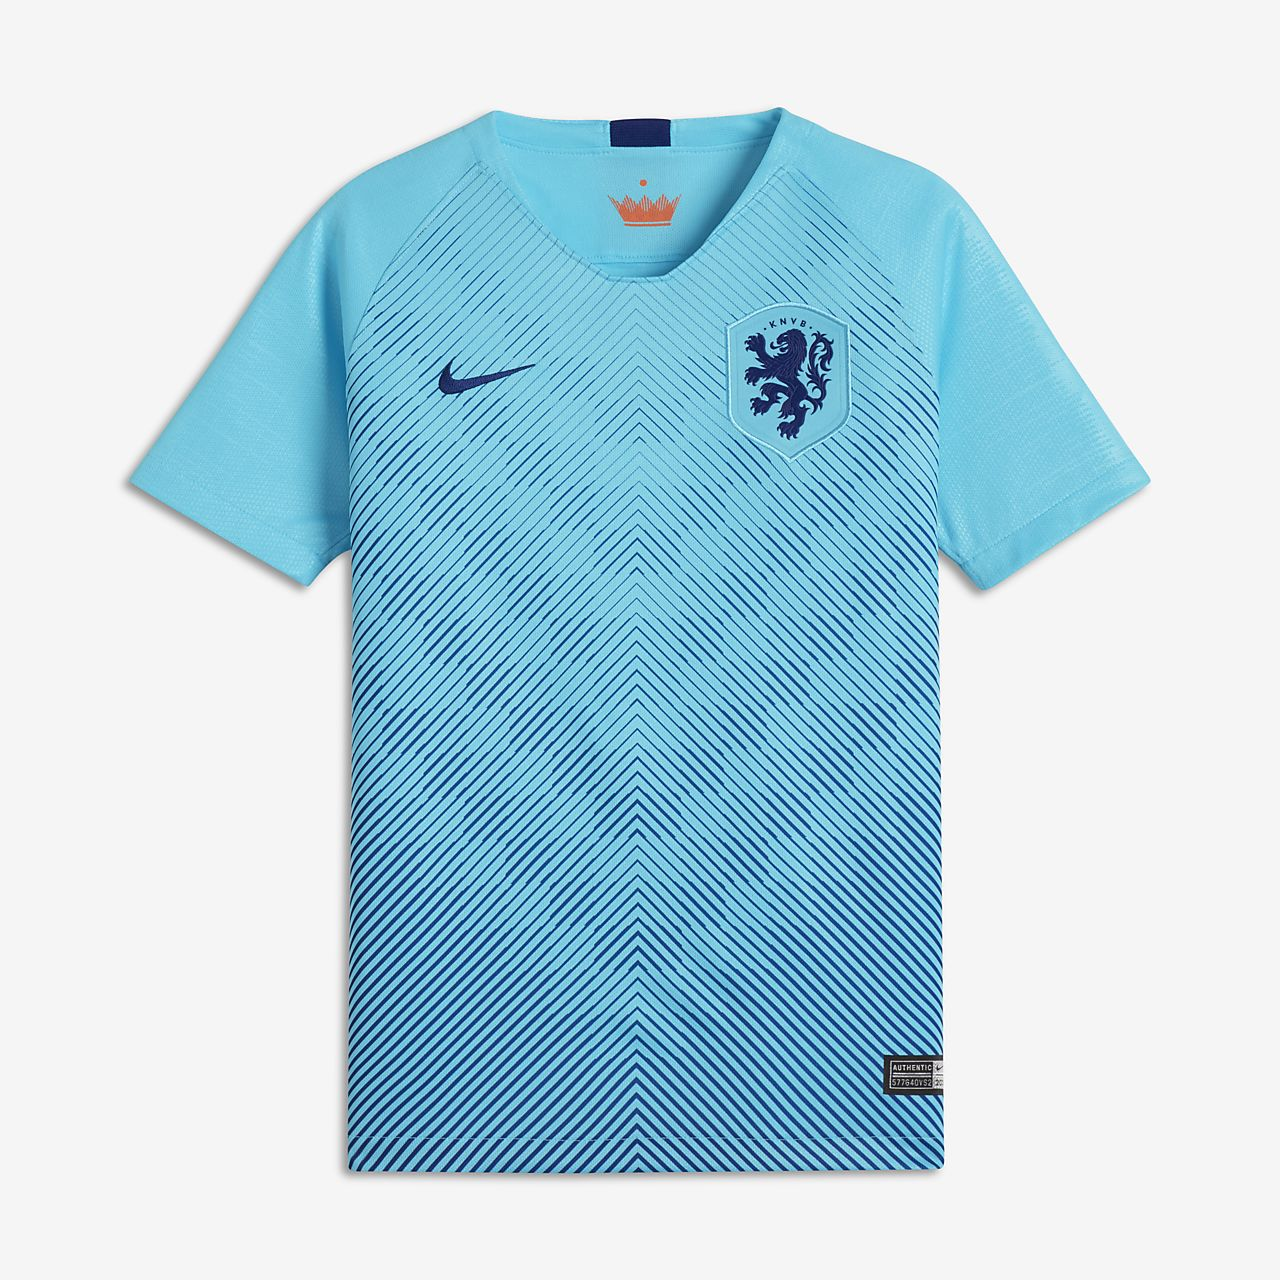 2018 Netherlands Stadium Away Older Kids' Football Shirt